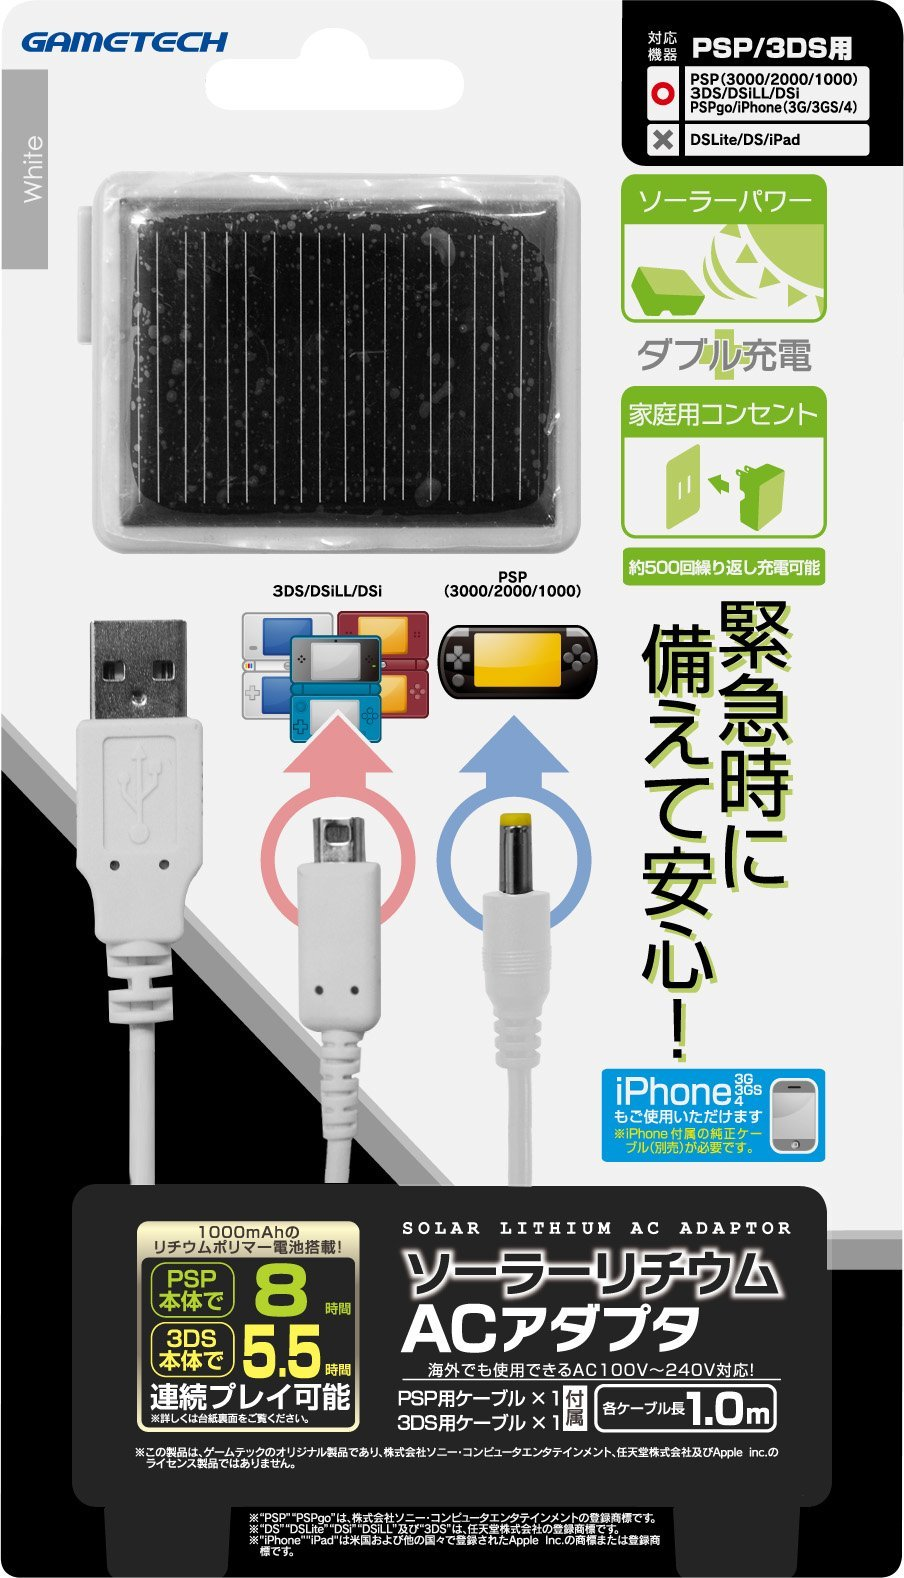 AC adapter for small solar panel with built-in Li-3DS · PSP ''solar lithium AC Adapter (White)'' by